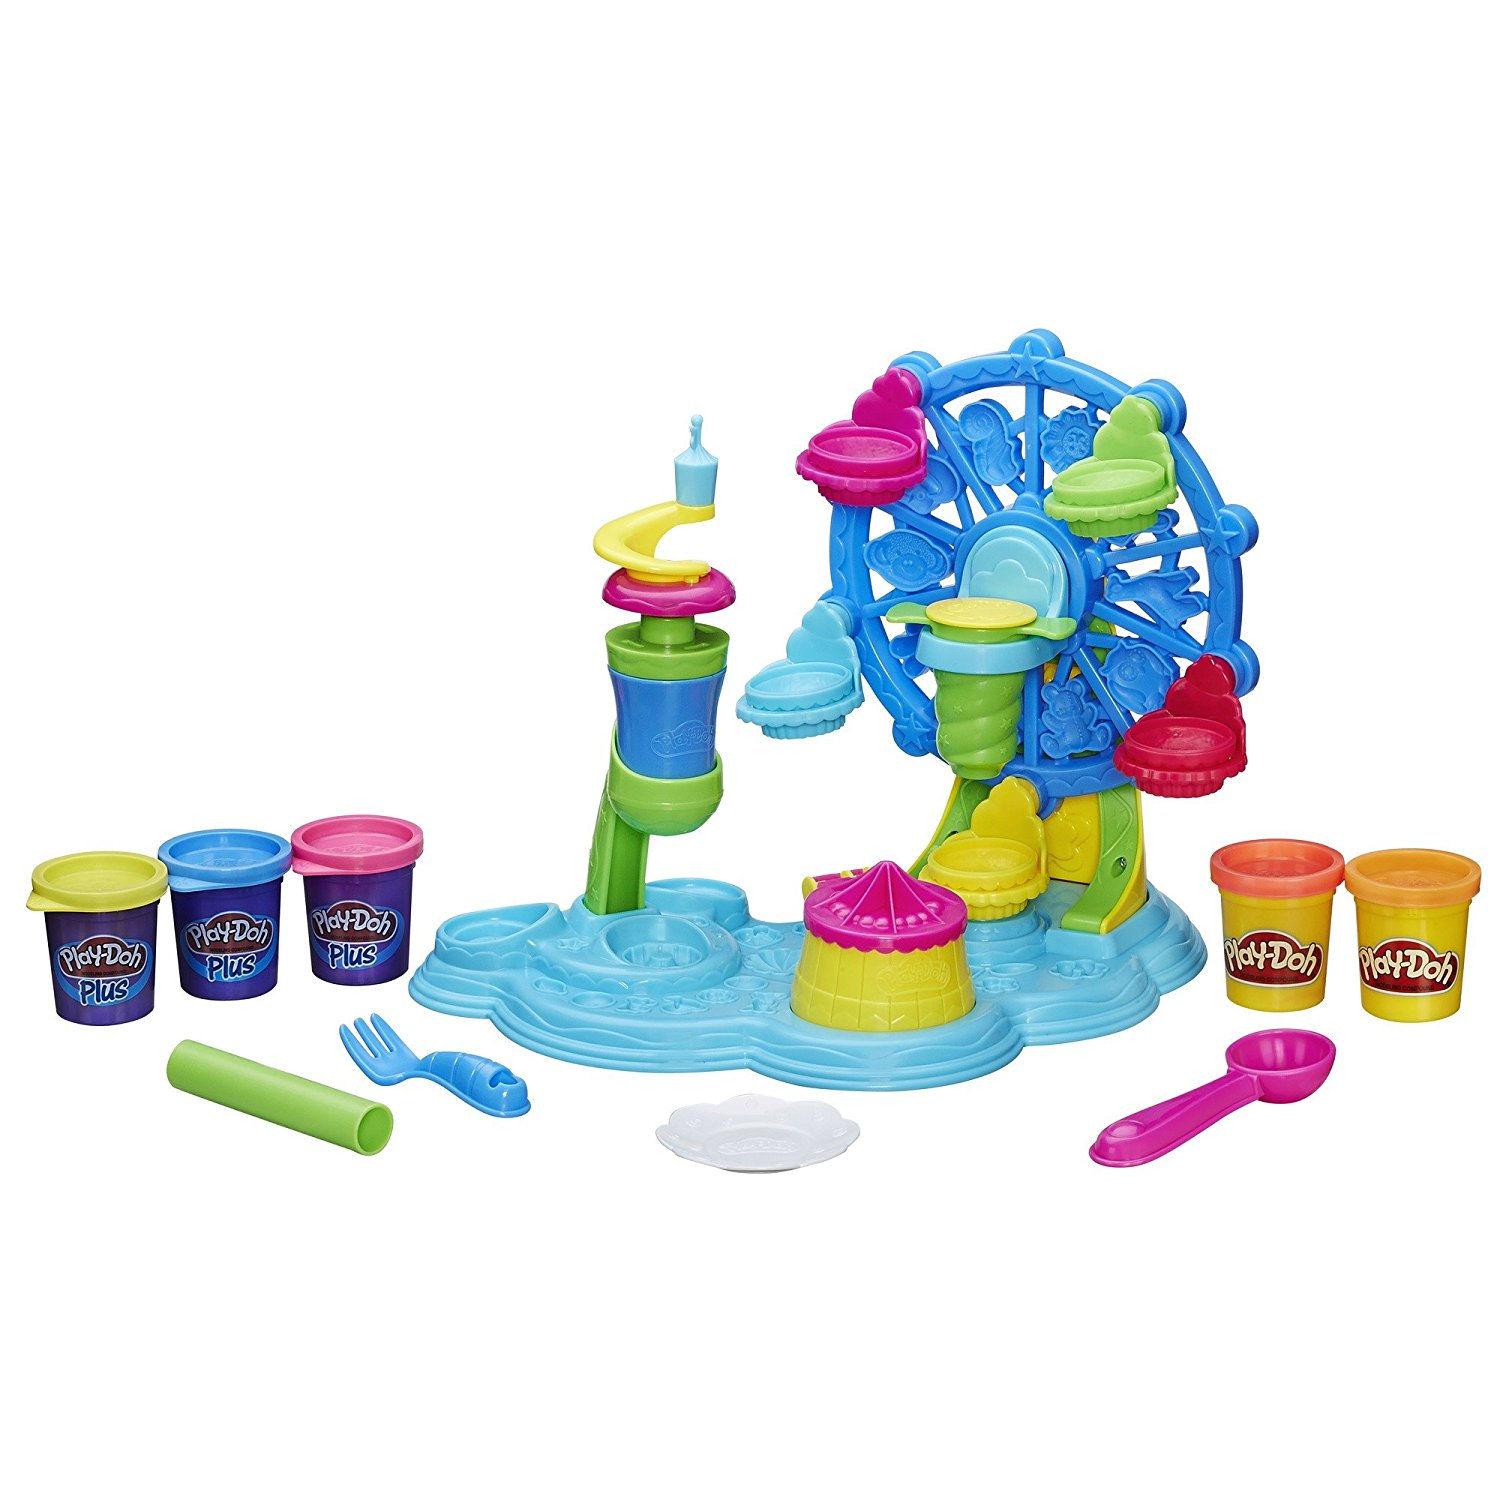 Play-Doh Cupcake Celebration Playset, Shape some colorful pretend cupcakes and give them a sweet ride By PlayDoh